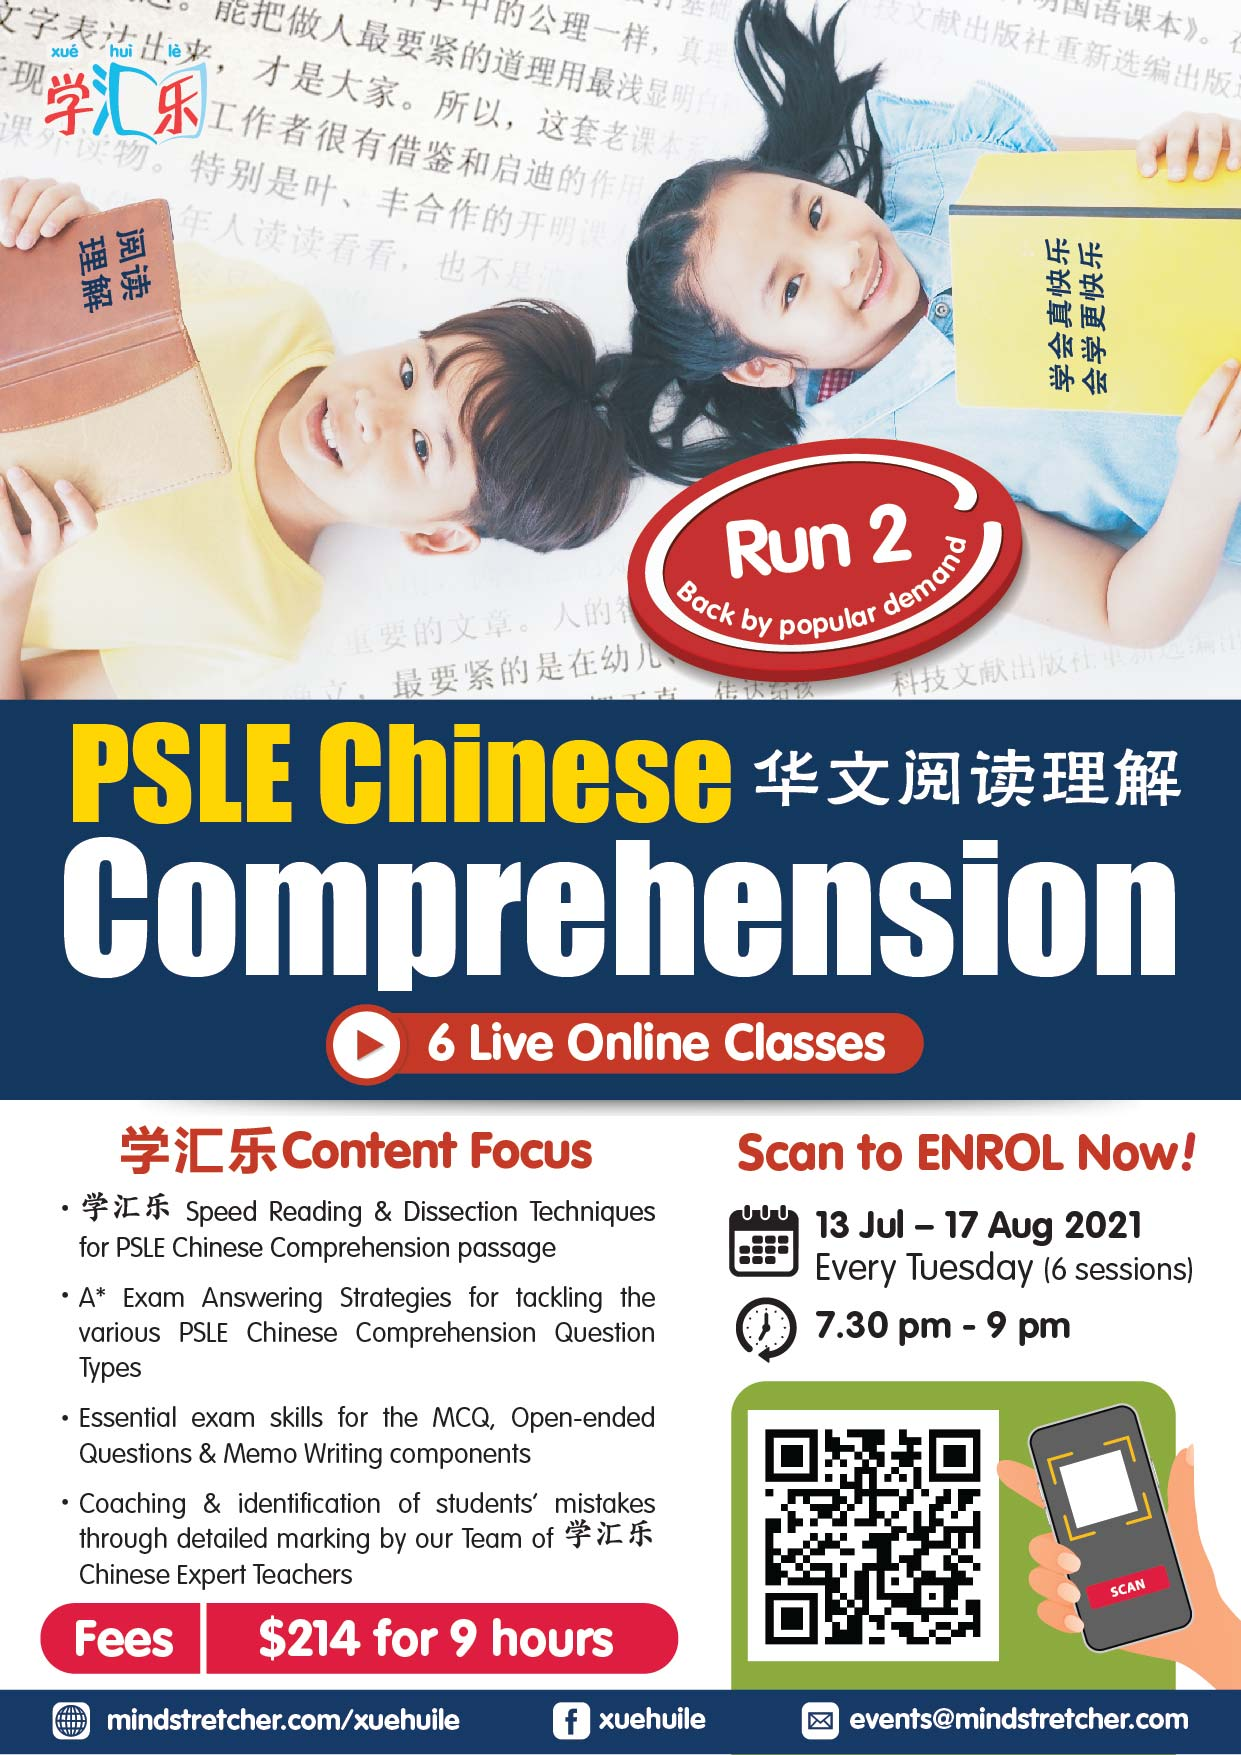 PSLE Chinese Comprehension Run2 (Mind Stretcher)